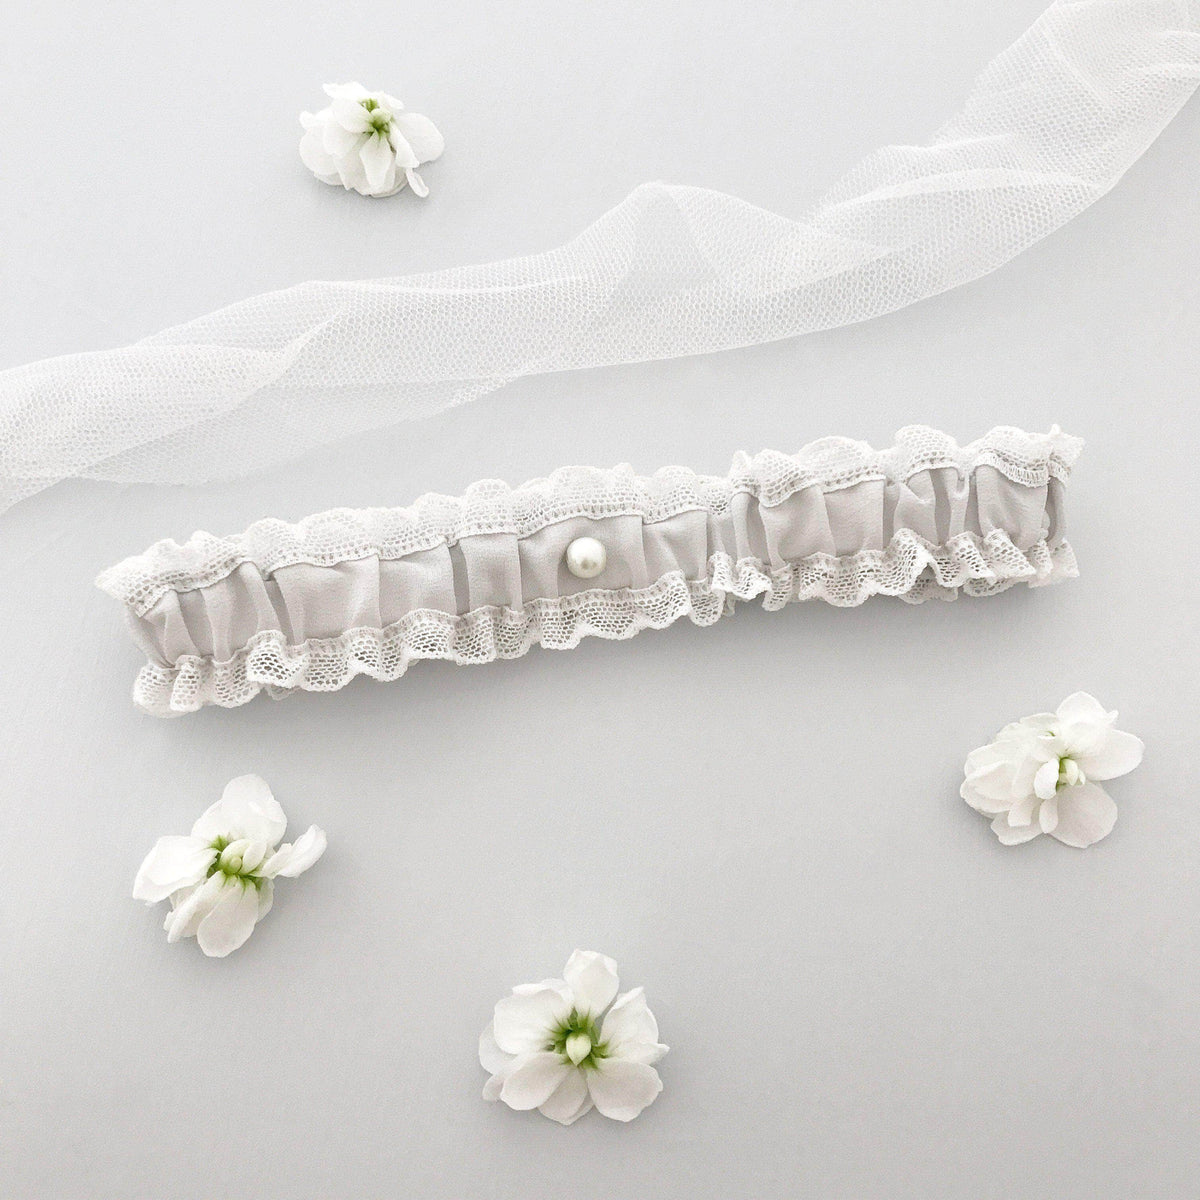 Wedding Garter Pale blue / Extra small 35-40cm (13.5-16 inch) Wedding garter in lace & silk (various colours) - 'Florence'